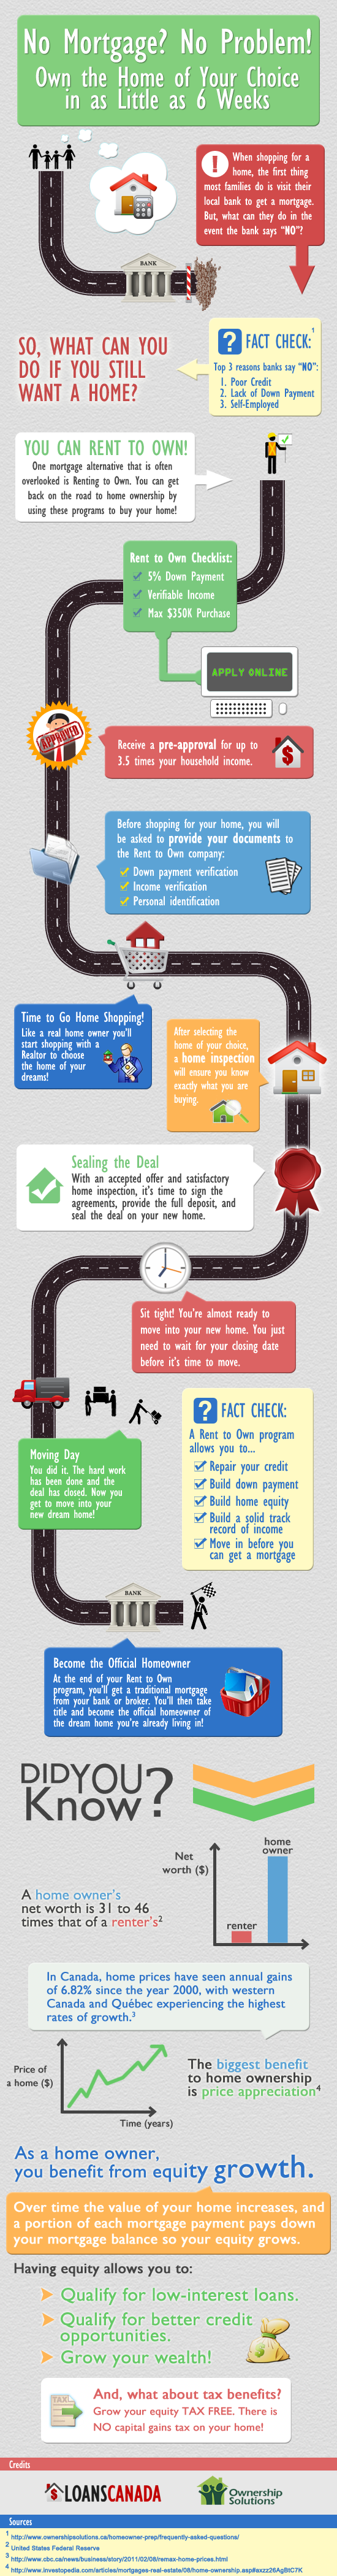 Rent to Own - Home Ownership Alternative - Infographic